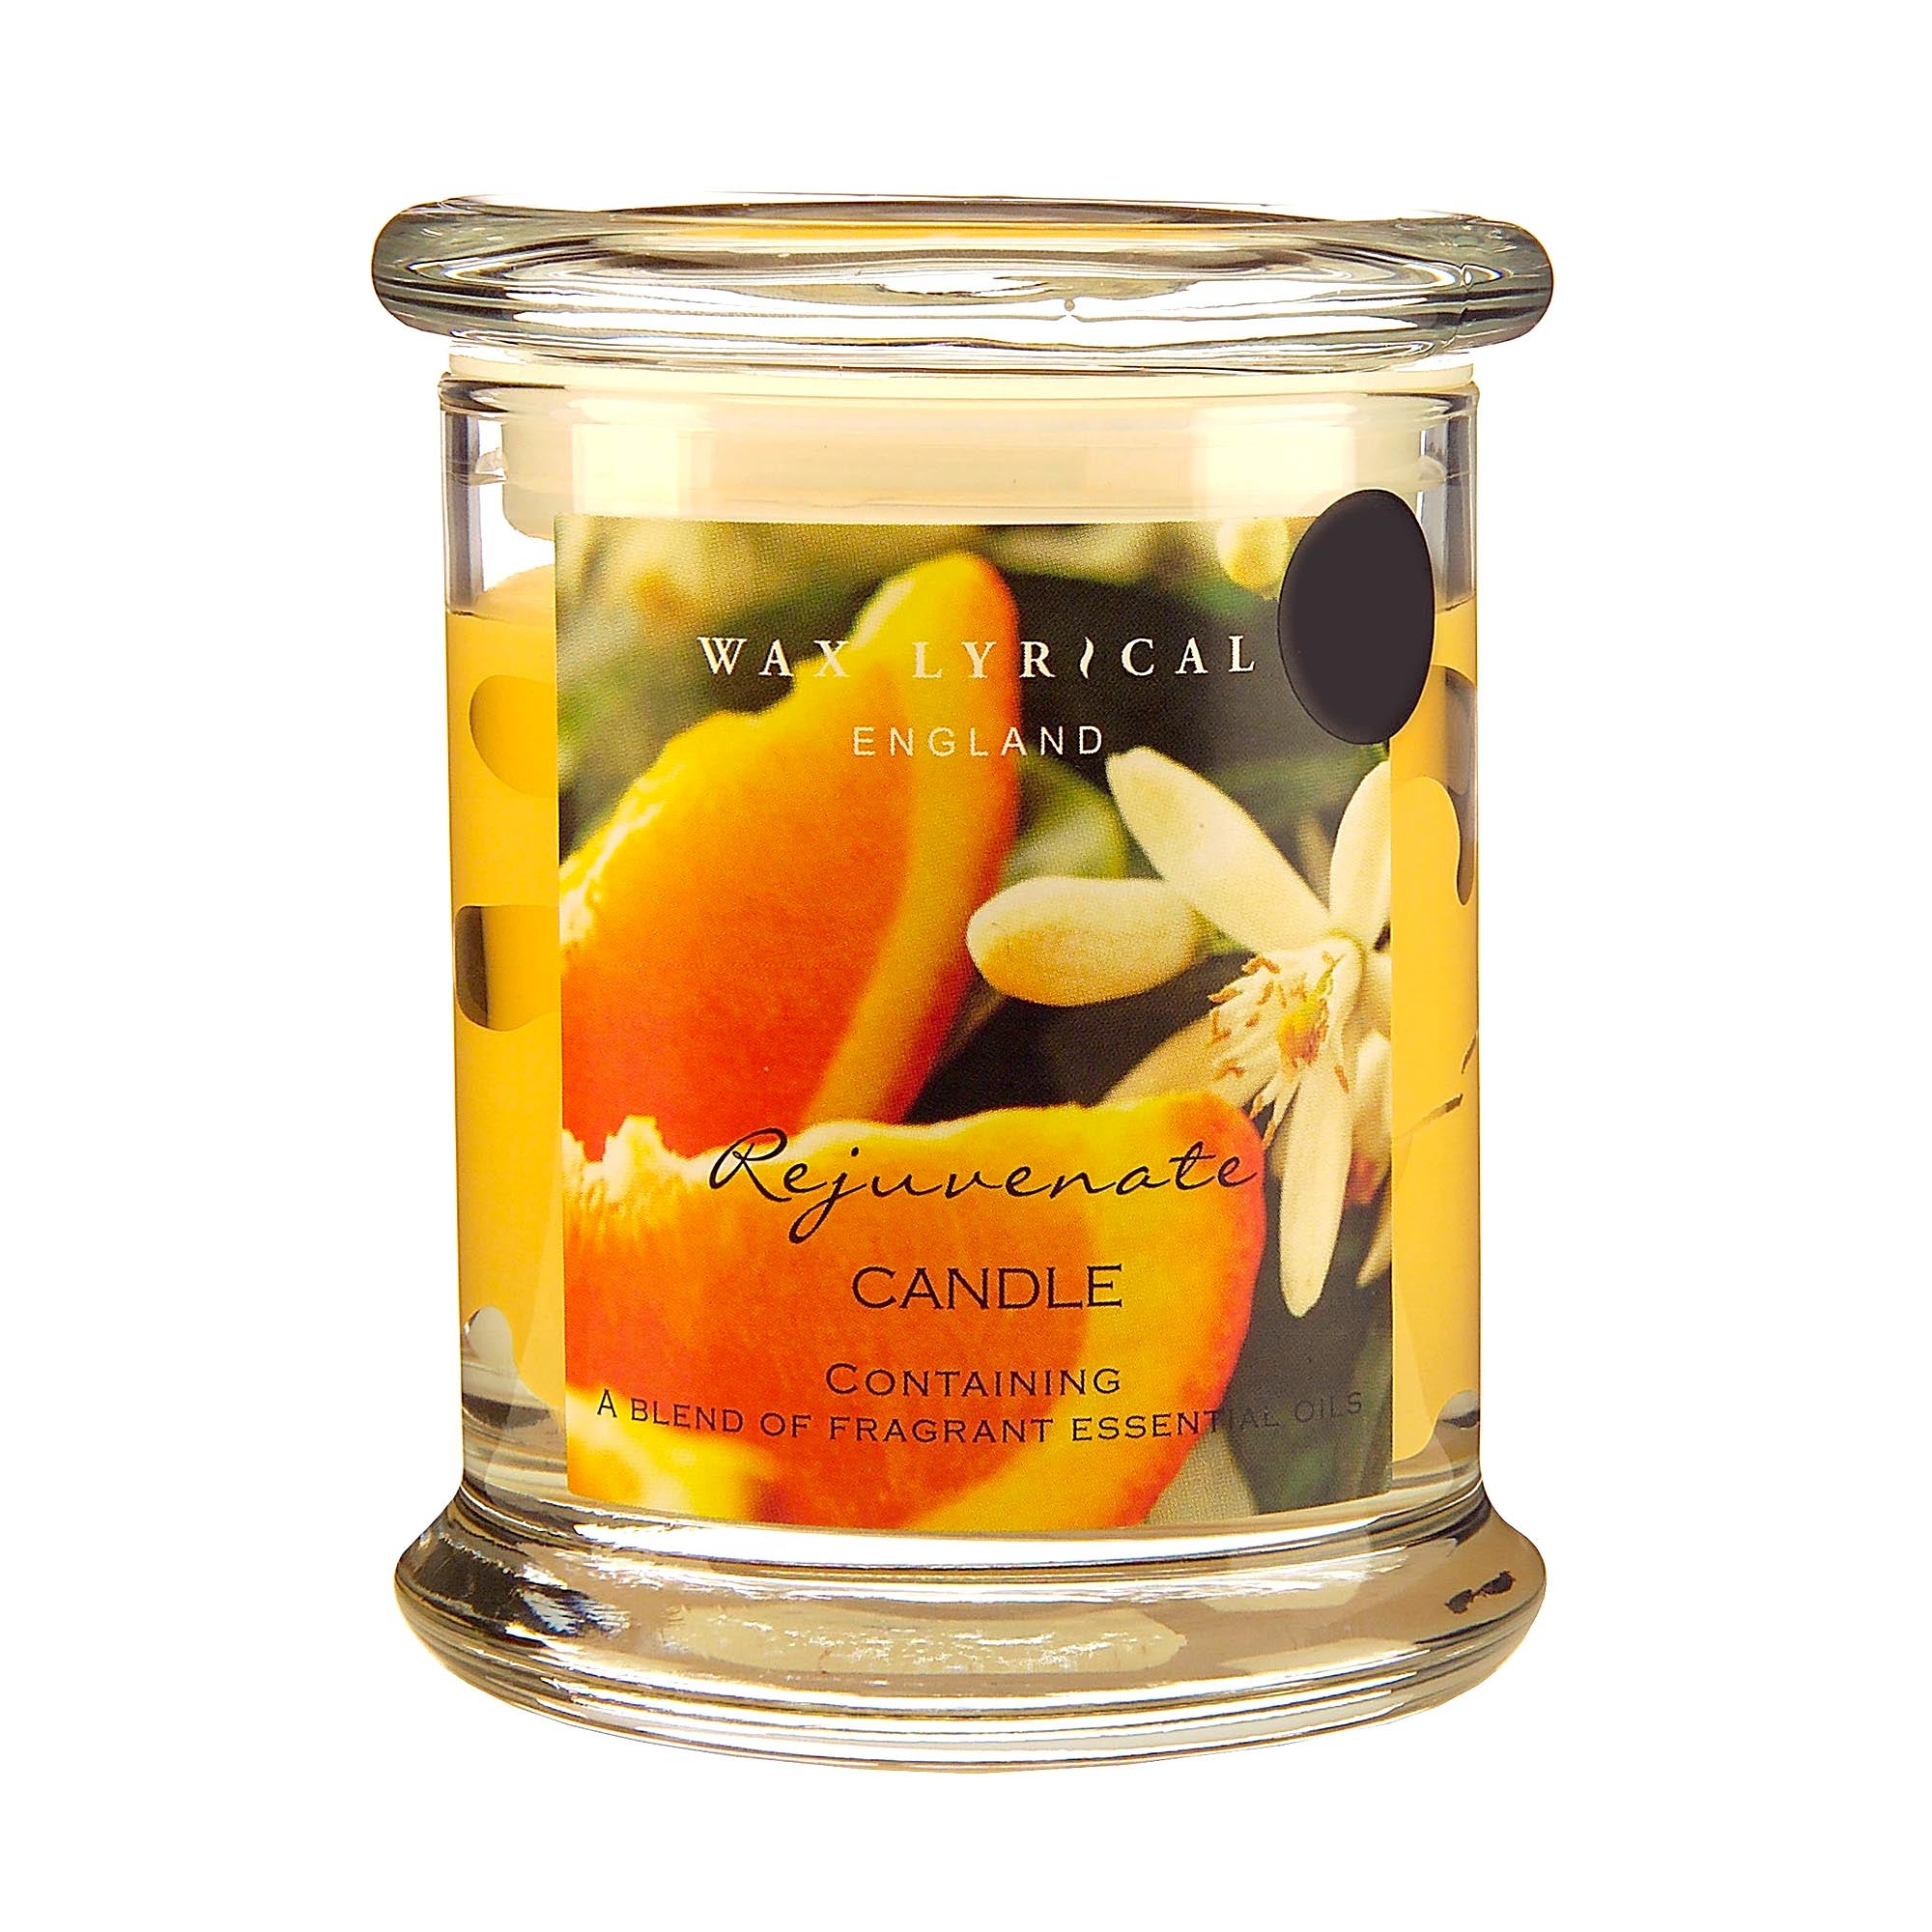 Wax Lyrical Rejuvenate Jar Candle